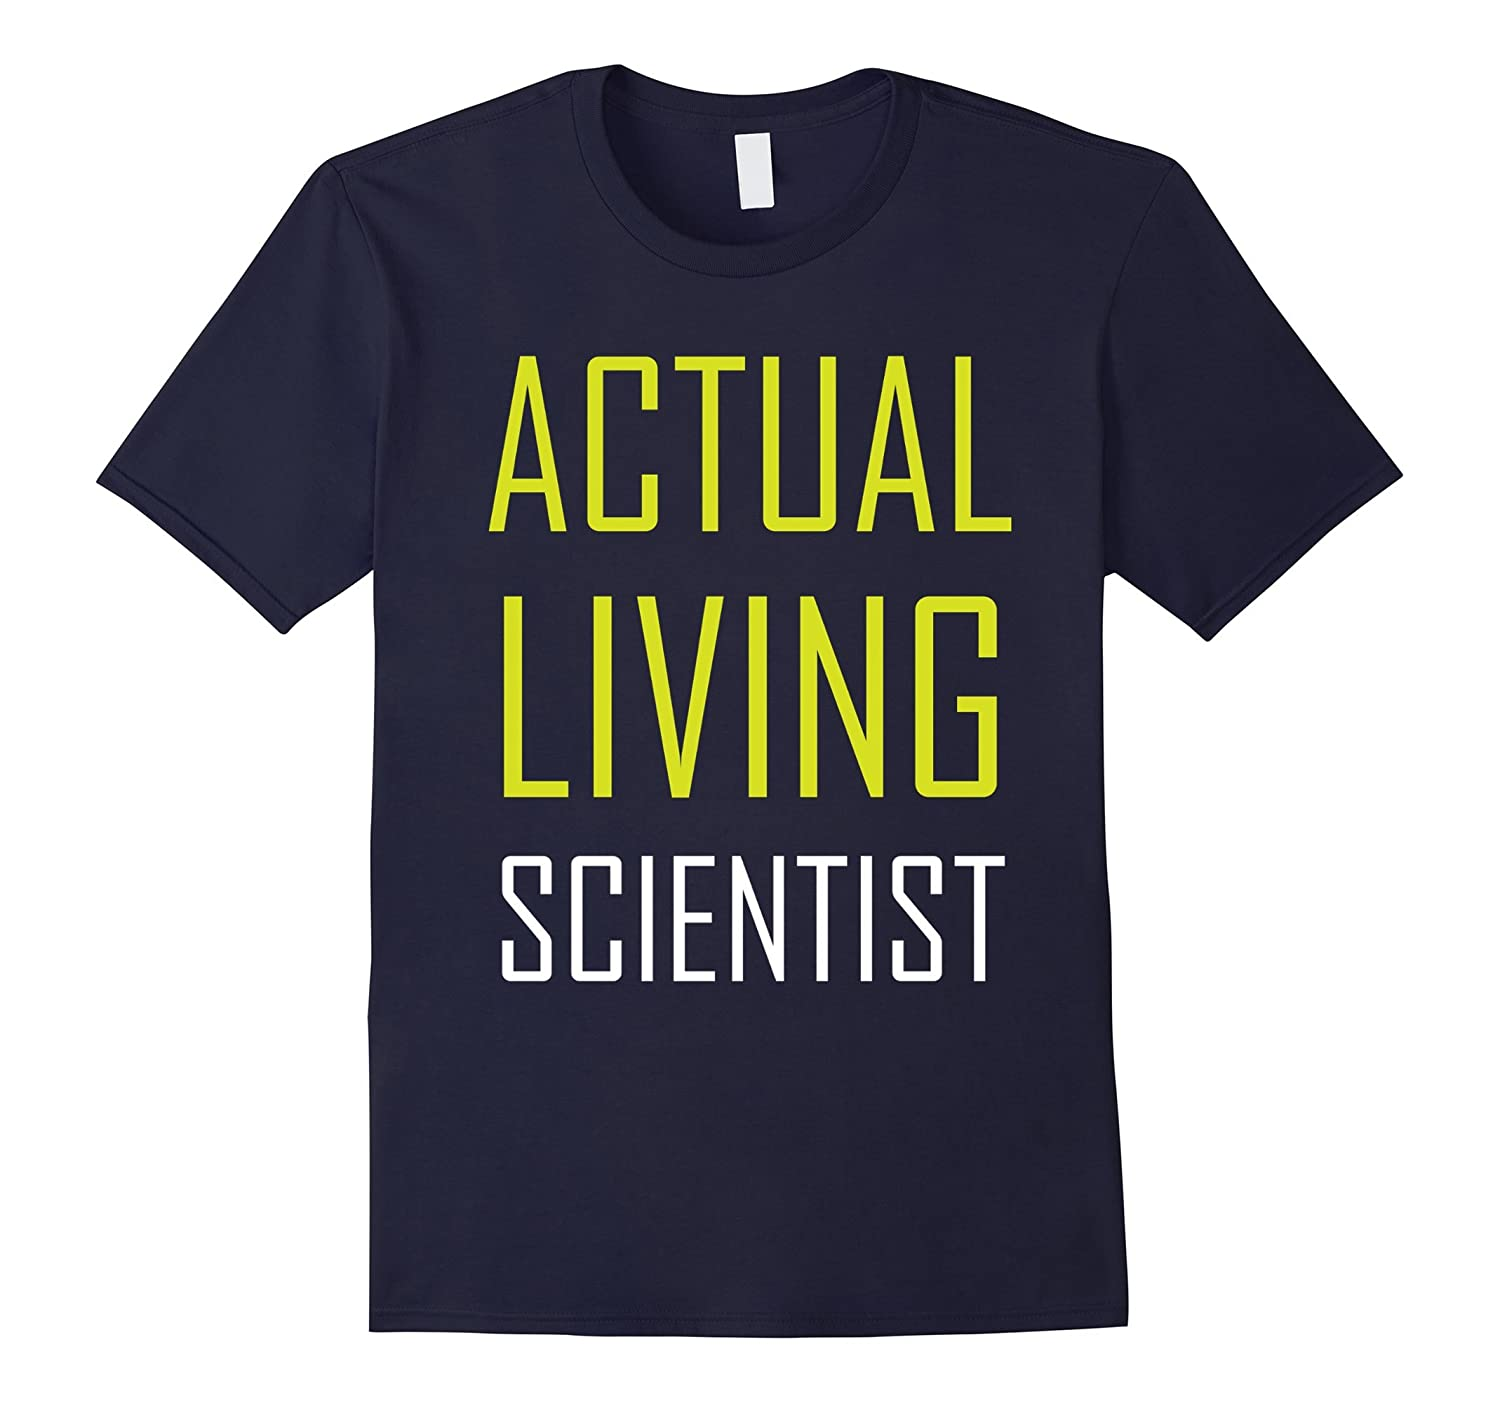 Actual Living Scientist Shirt, Funny #actuallivingscientist-TH